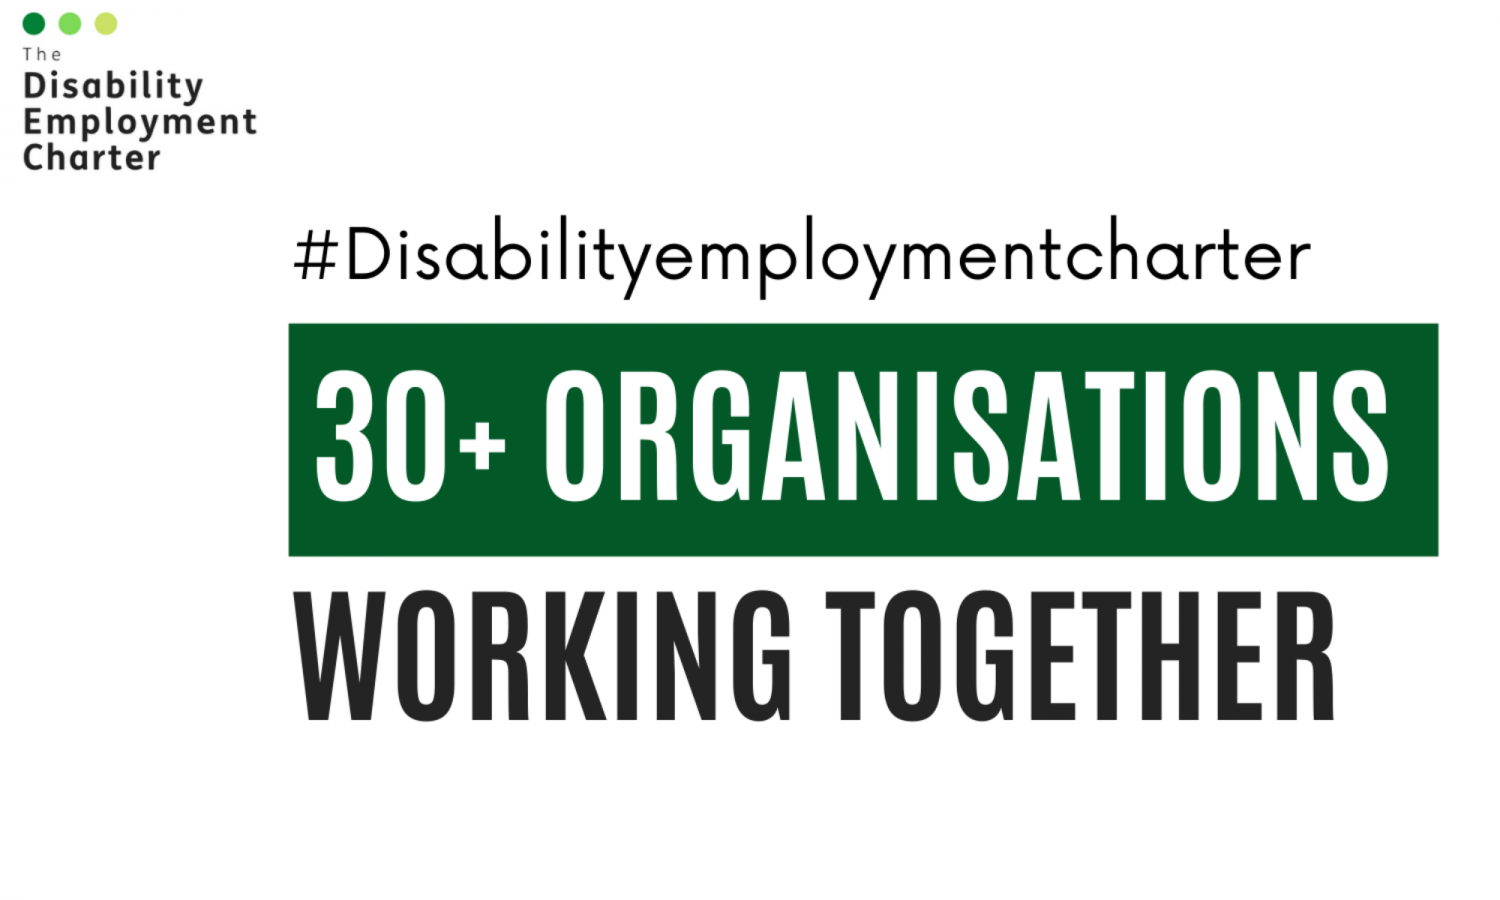 The Disability Employment Charter, #Disabilityemploymentcharter, 30+ organisations working together.